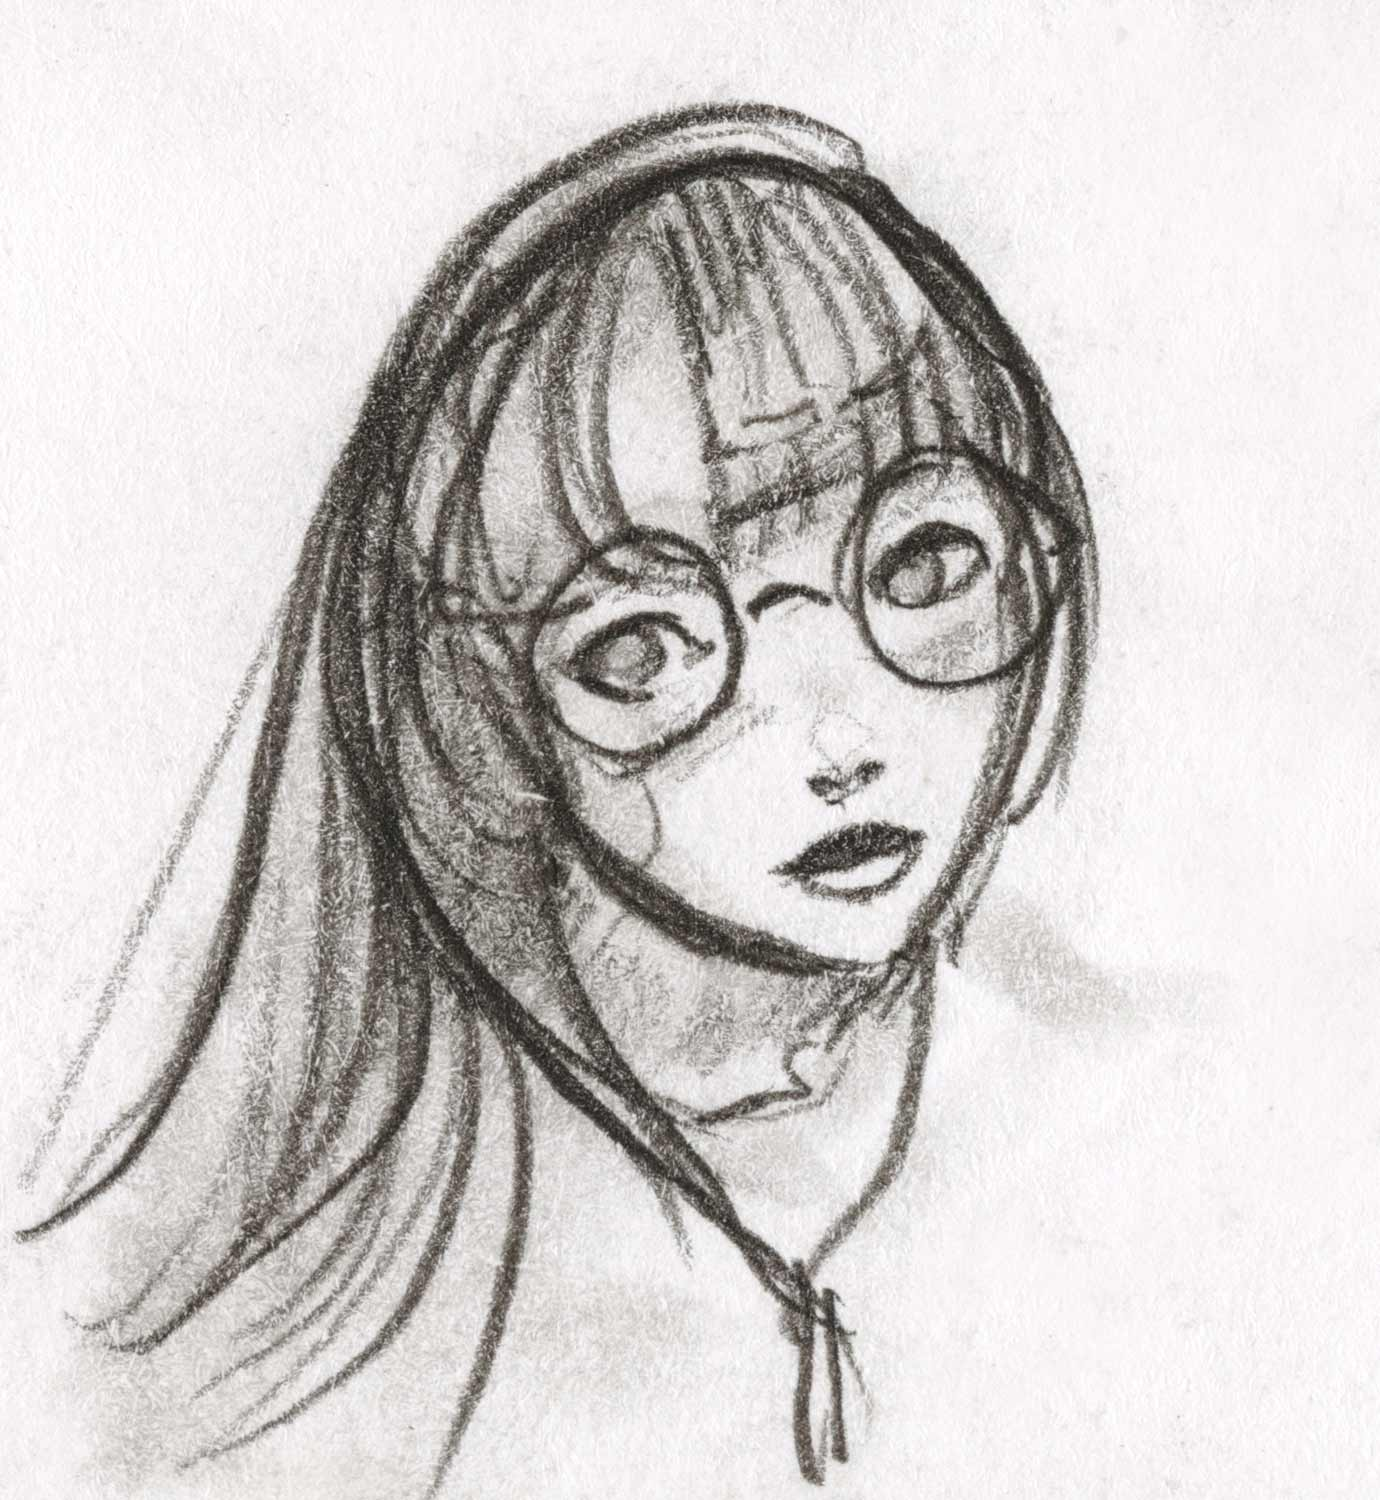 drawing of a girl wearing glasses by Danny Roberts Character design. ダニー・ロバーツによる眼鏡をかけた少女のキャラクターデザイン